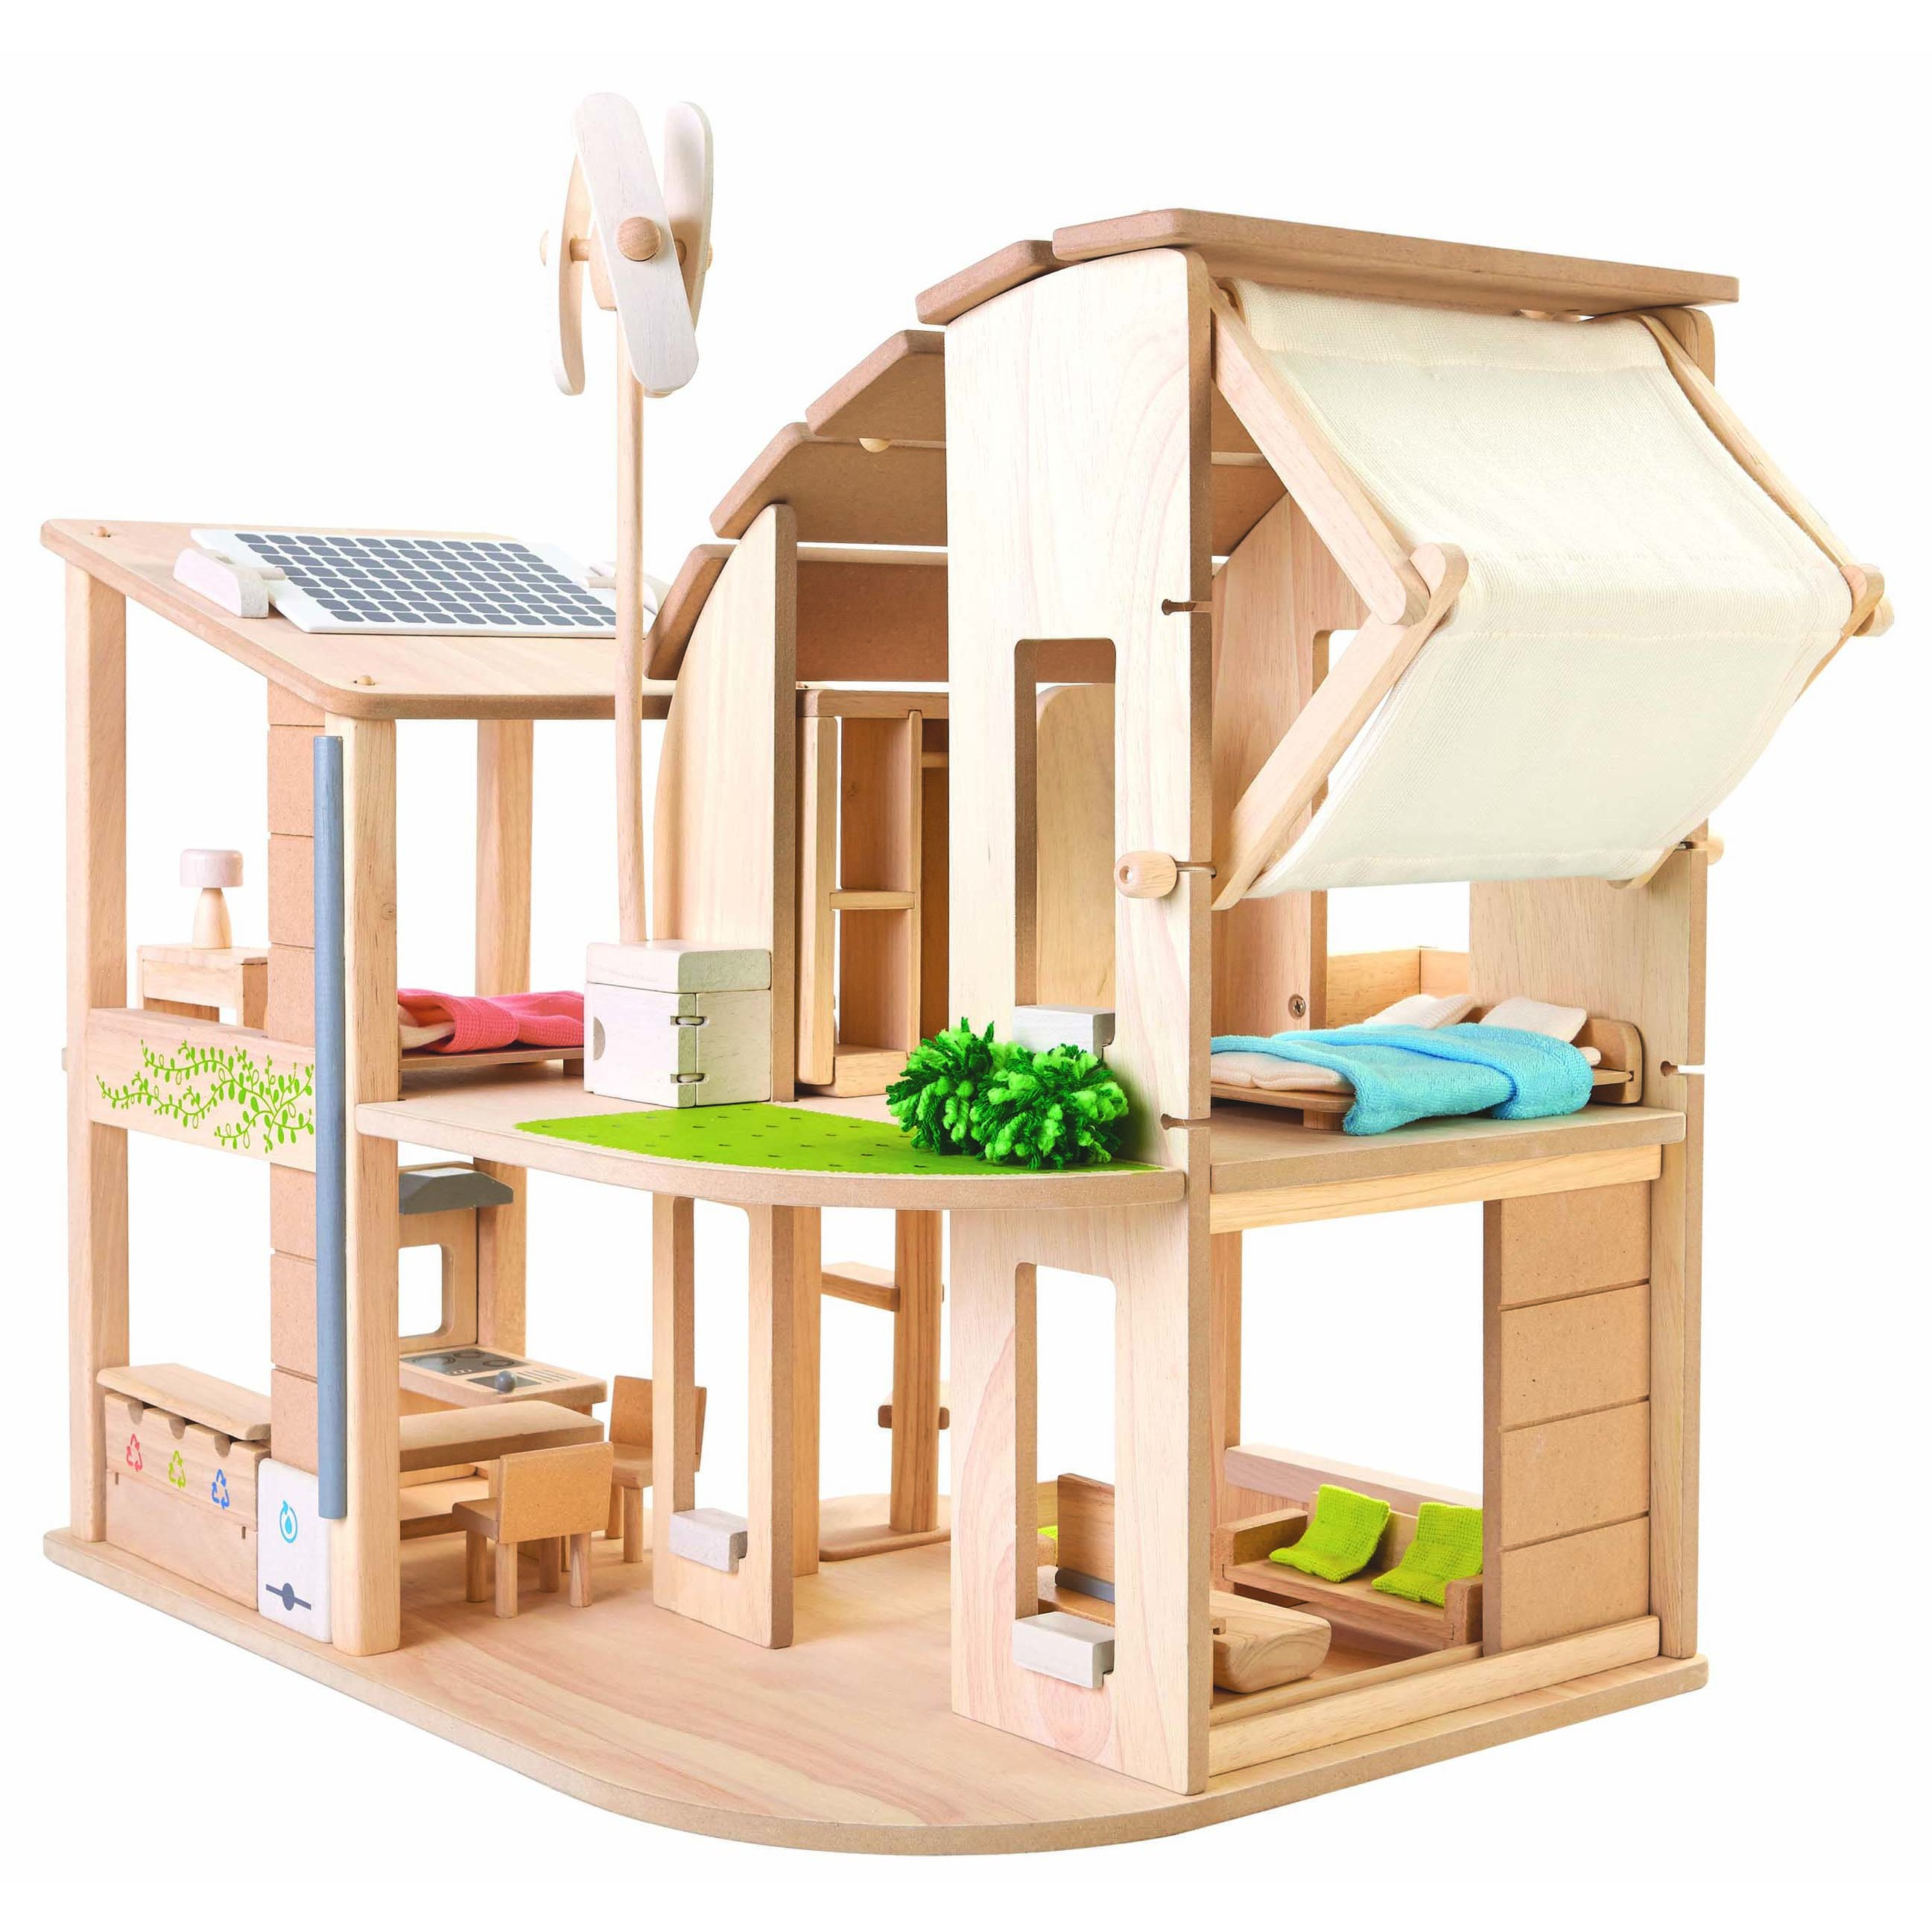 Plan Toys Green Dolls House Furniture